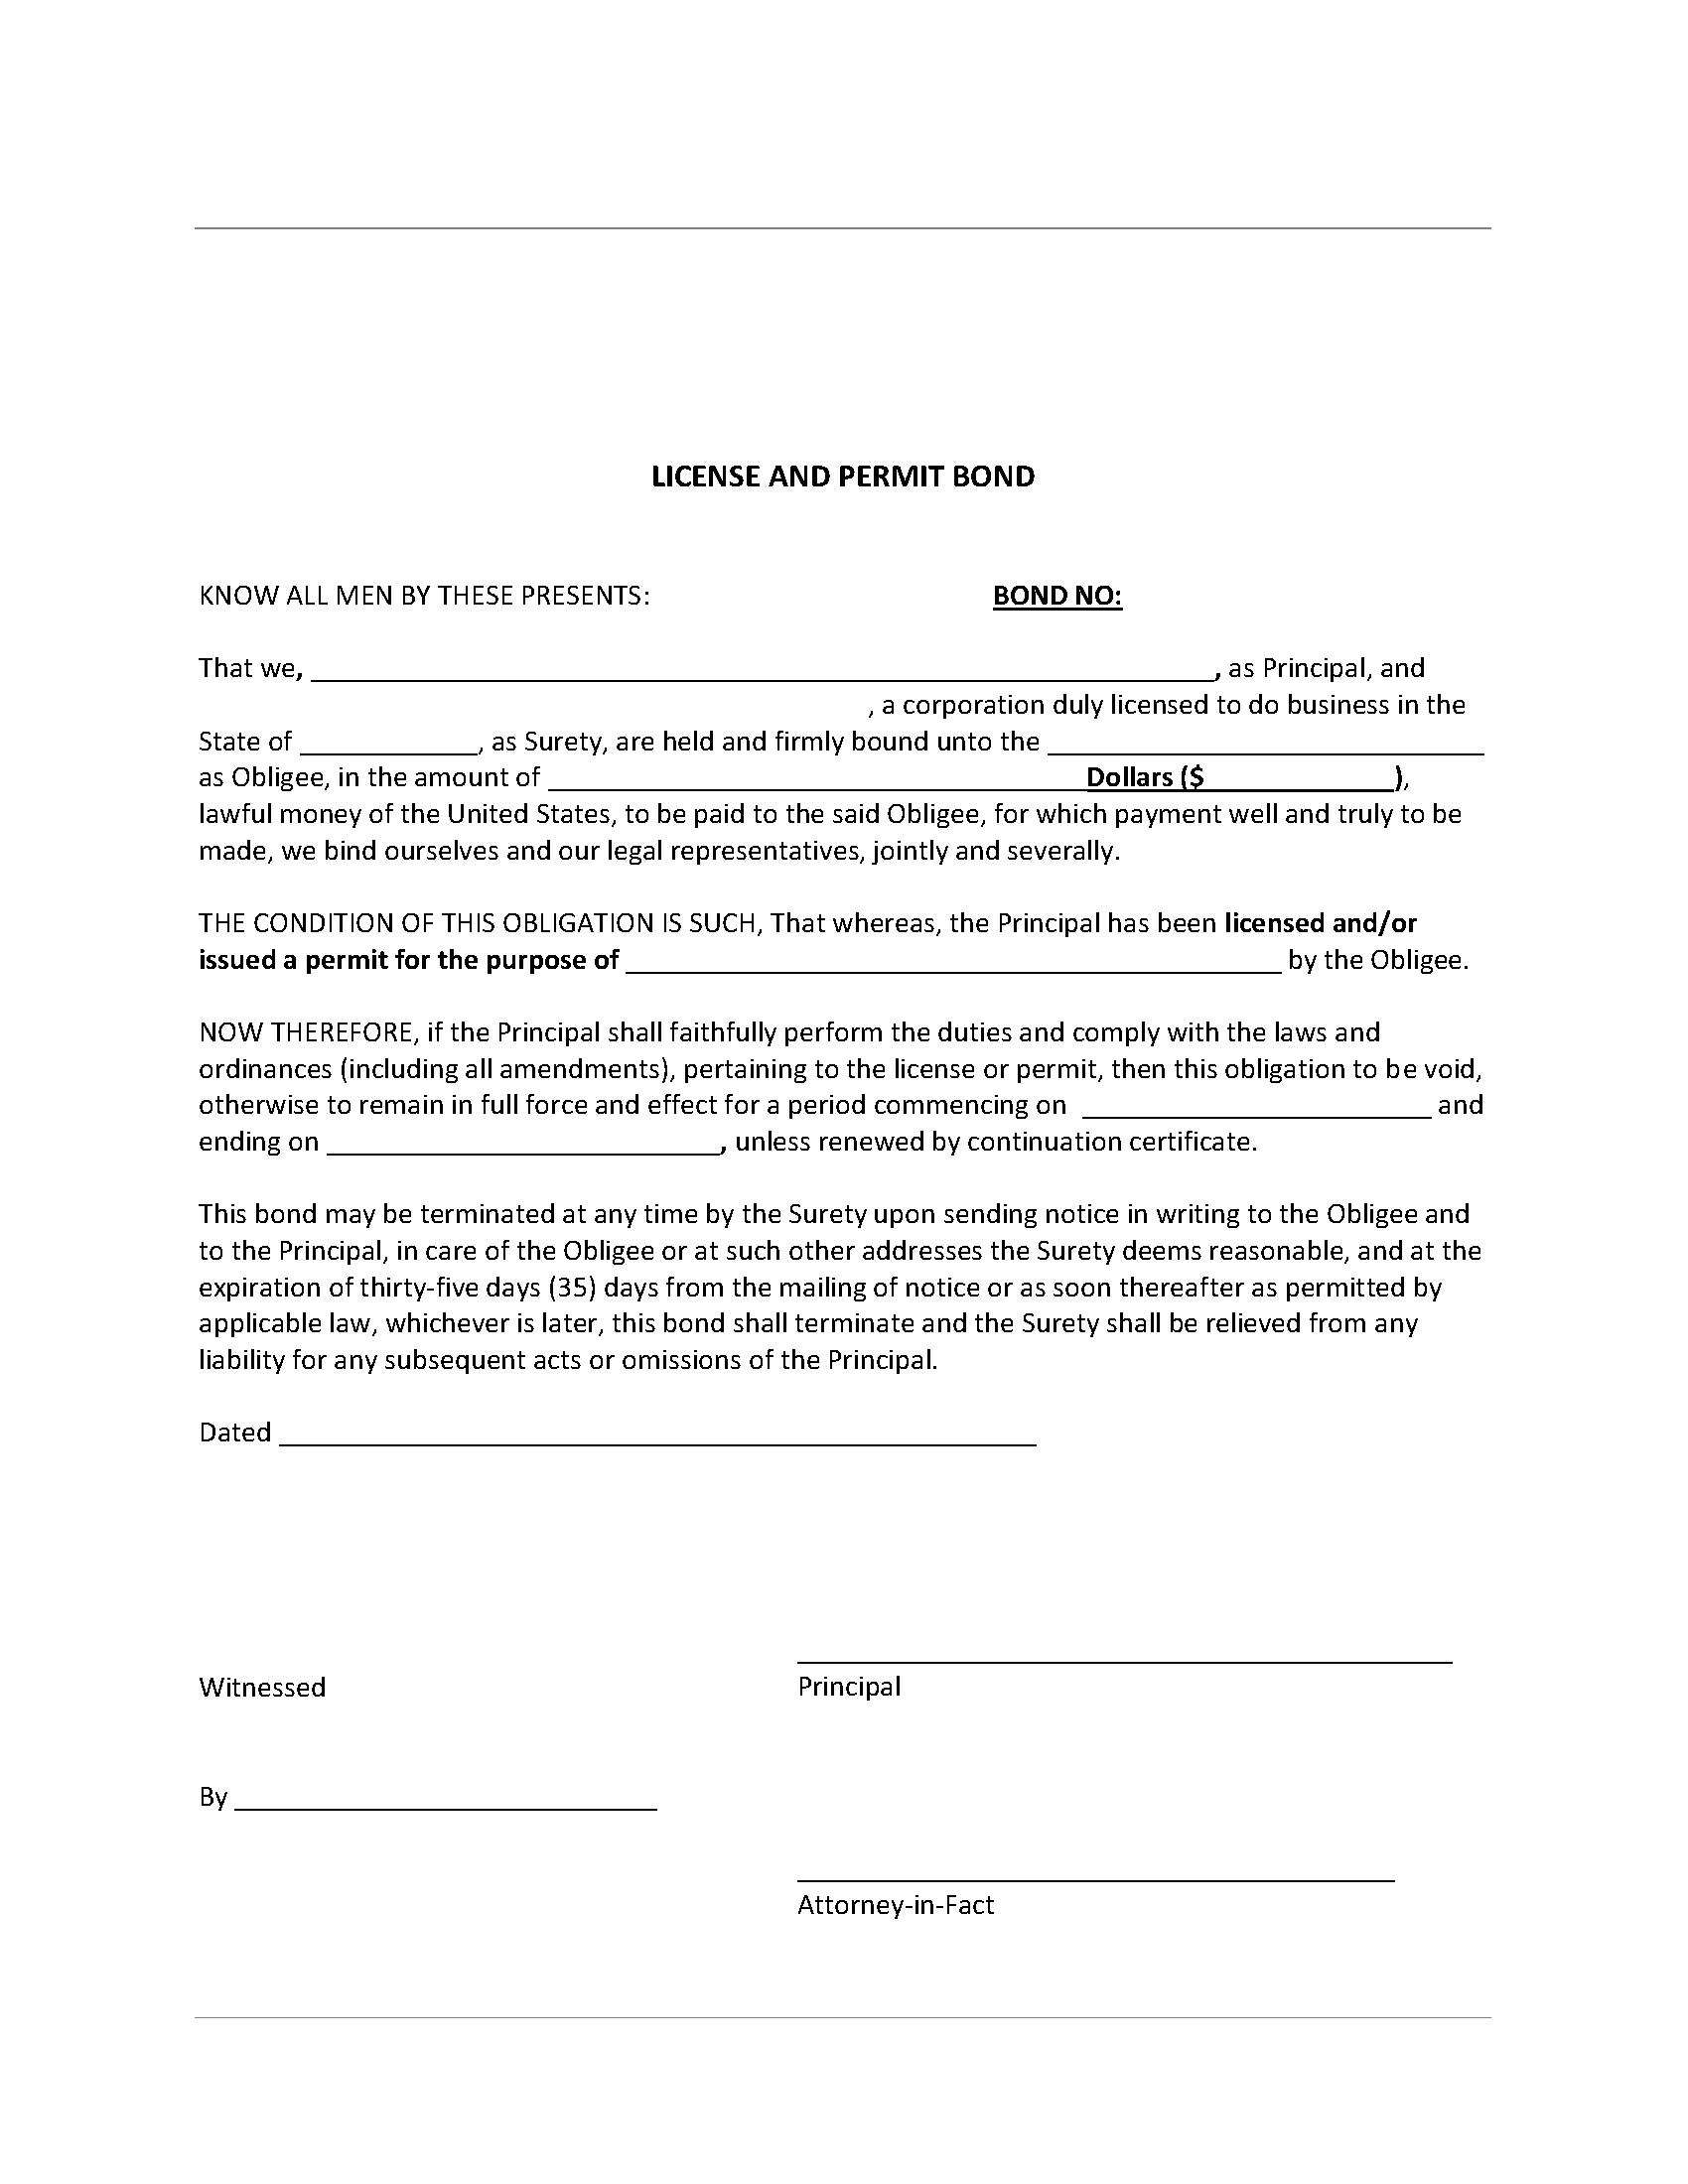 City of Macedonia Contractor's License sample image